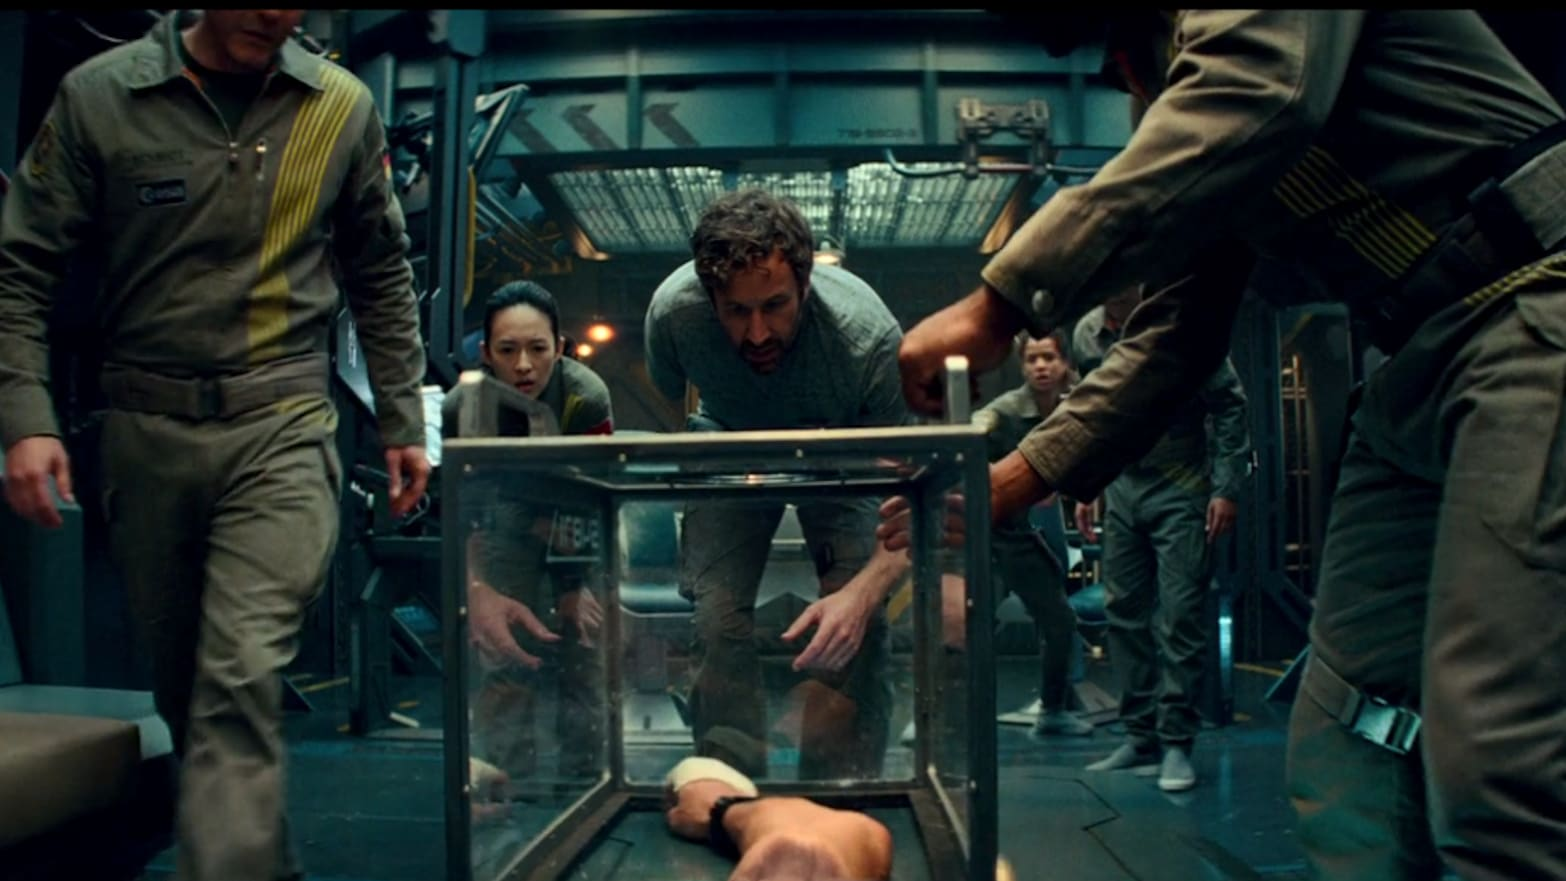 The Cloverfield Paradox Netflix S Super Bowl Surprise Is Overhyped